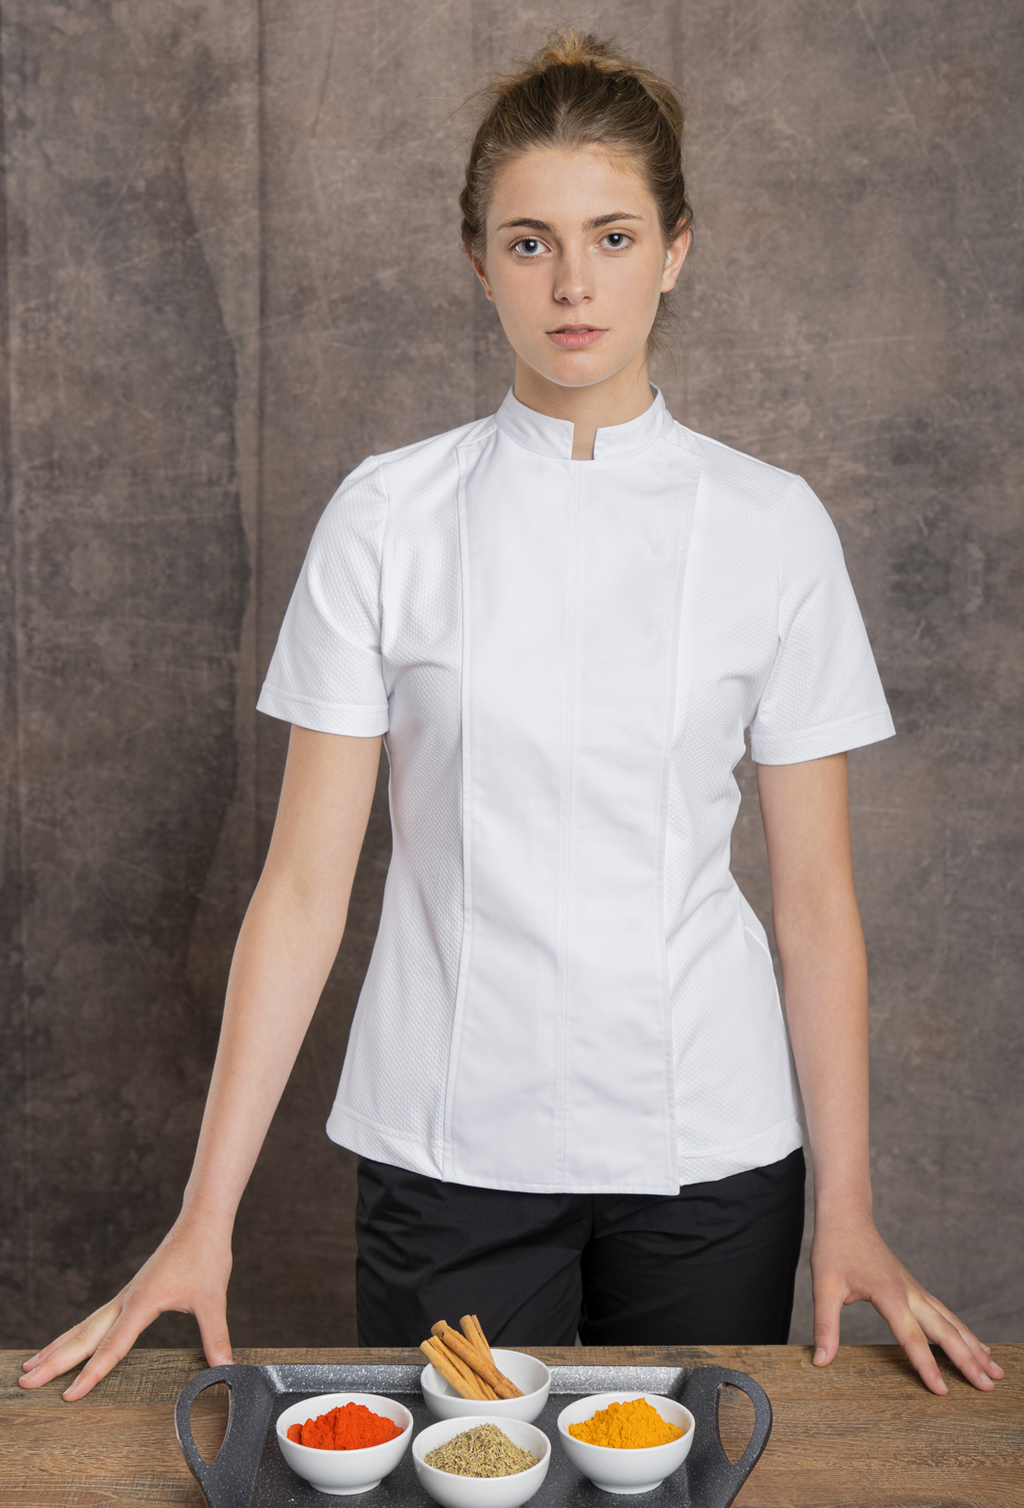 WOMEN'S CHEF JACKET S/S RECYCLED FABRIC GOFRADO DESIGN